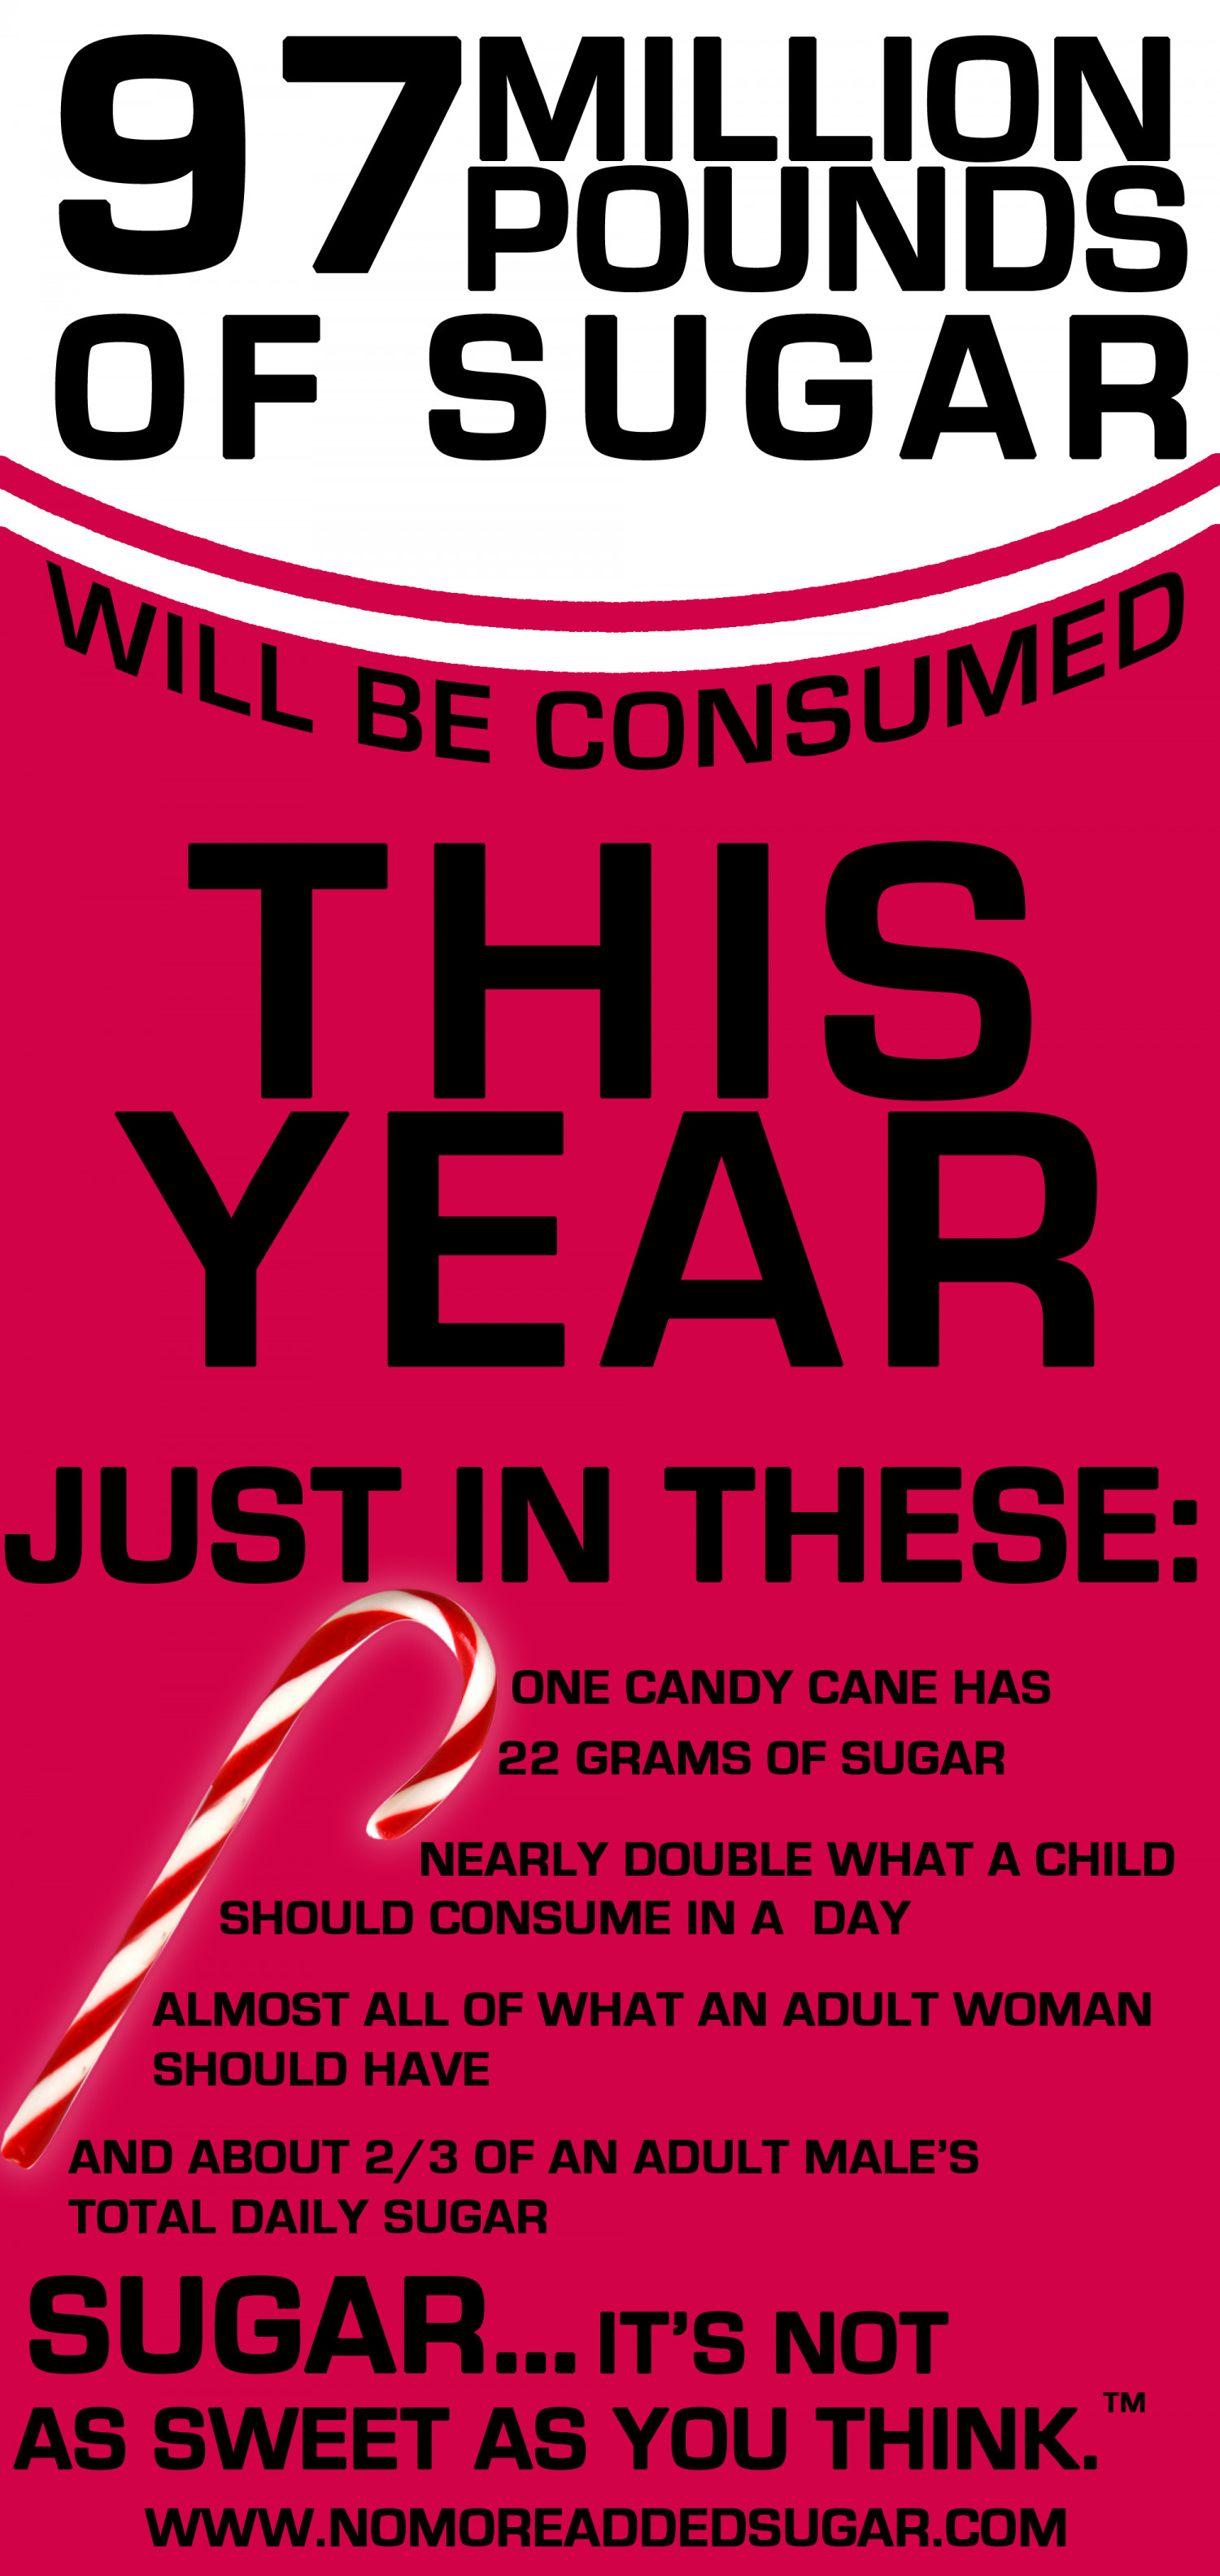 97 Million Pounds of Sugar Consumed this Year Infographic